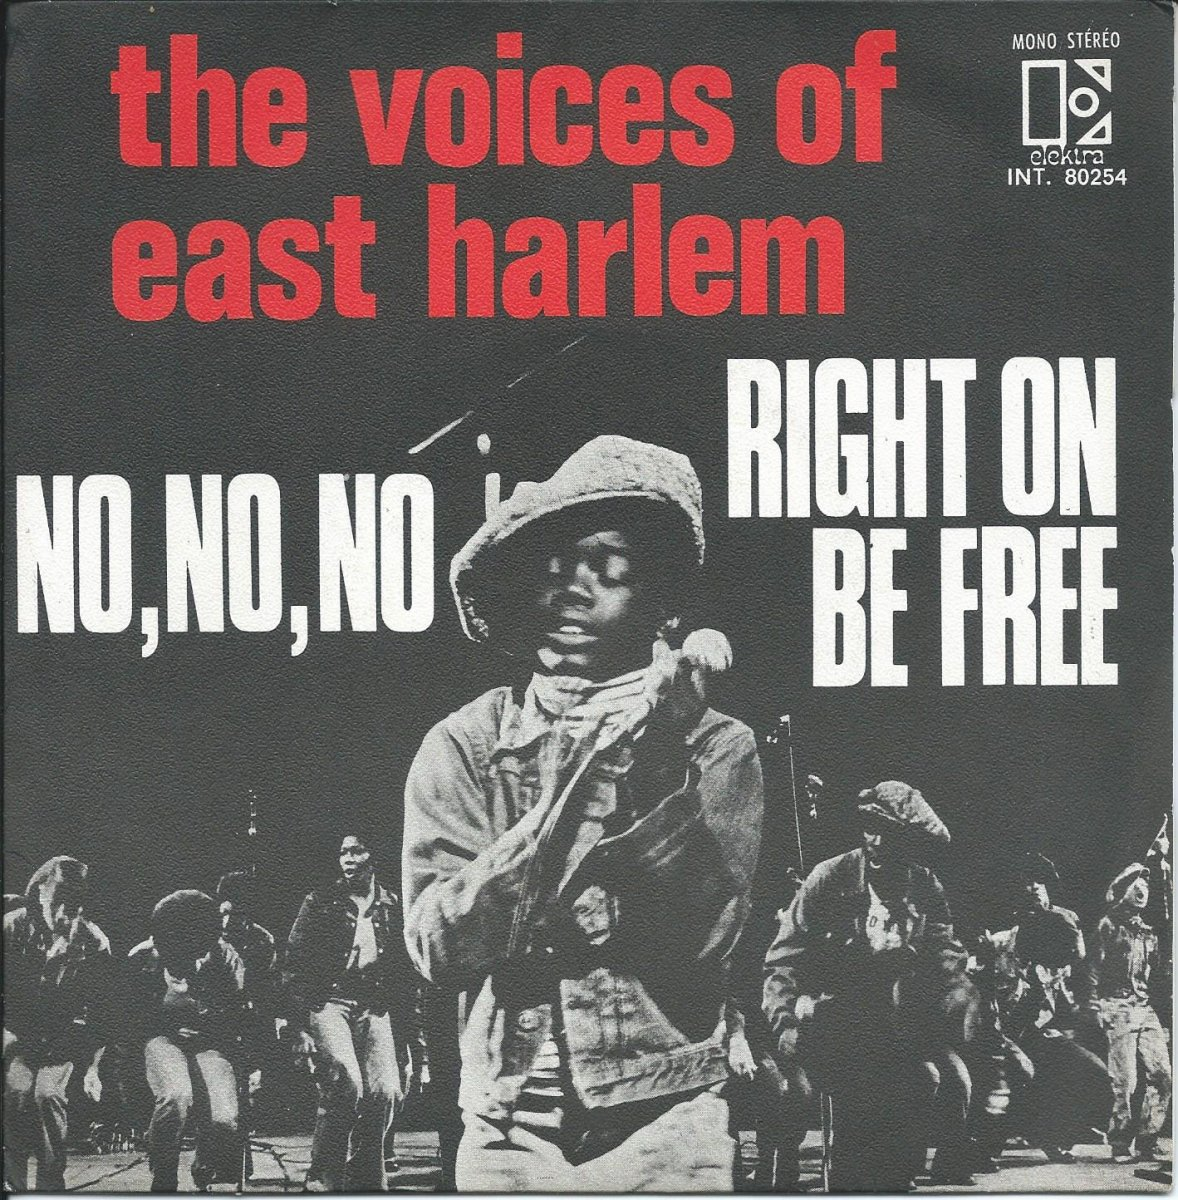 THE VOICES OF EAST HARLEM / NO, NO, NO / RIGHT ON BE FREE (7